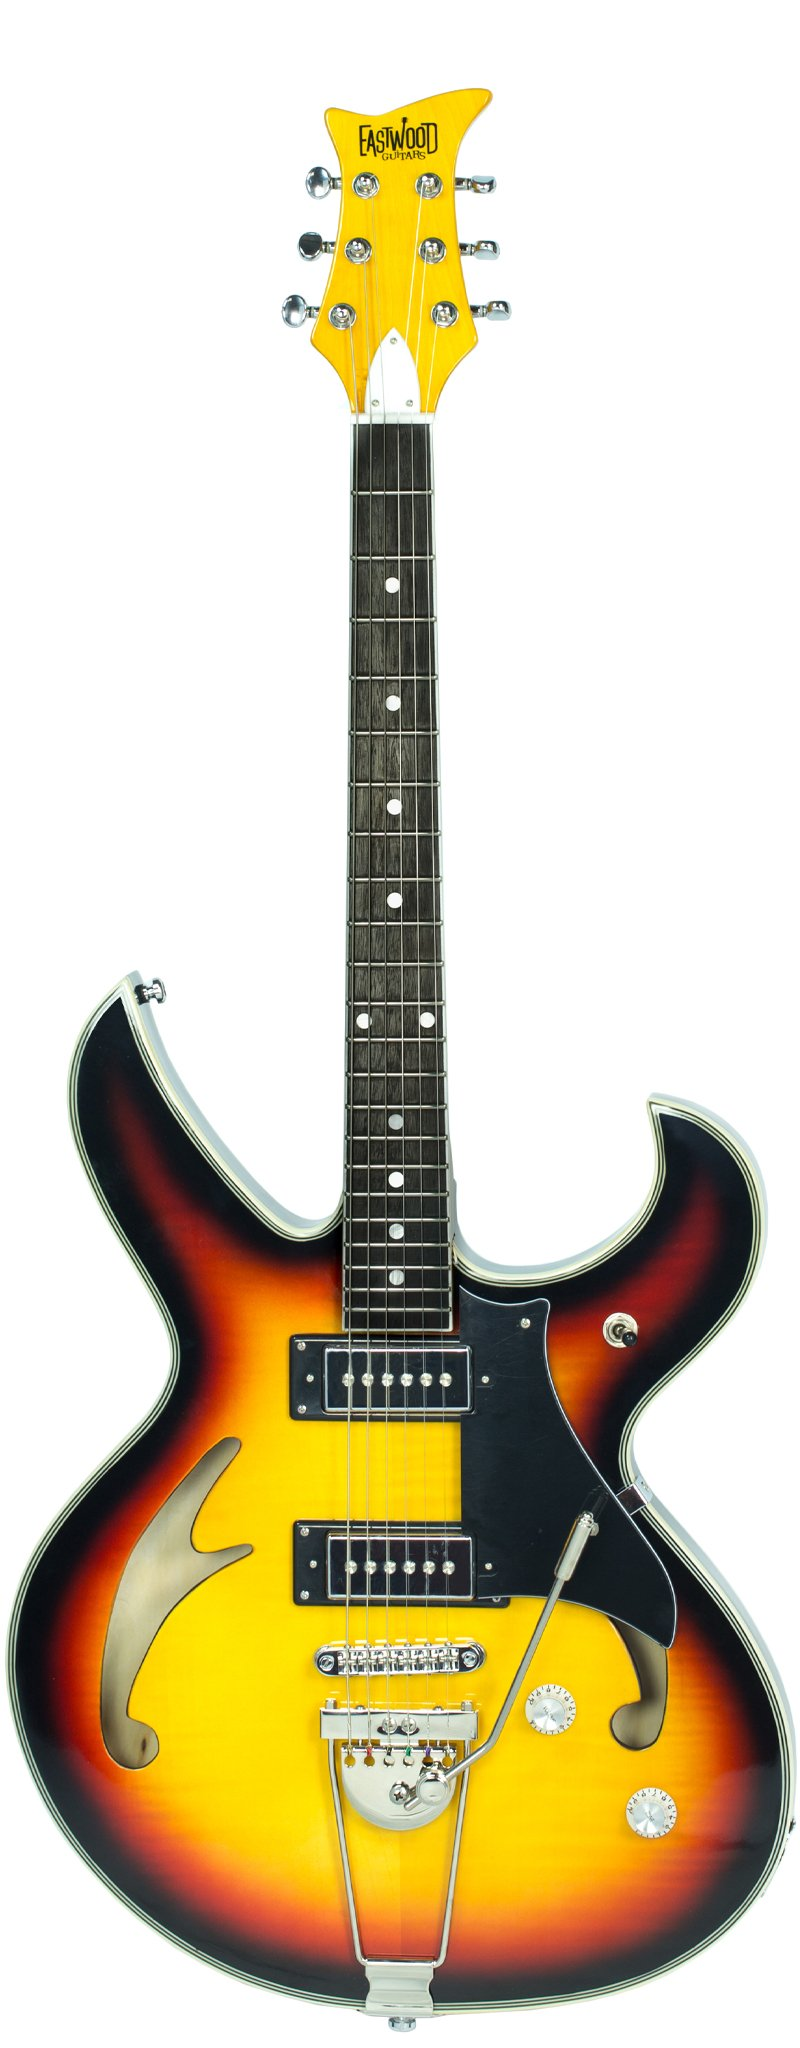 Eastwood Guitars Fire Bird Sunburst Full Front